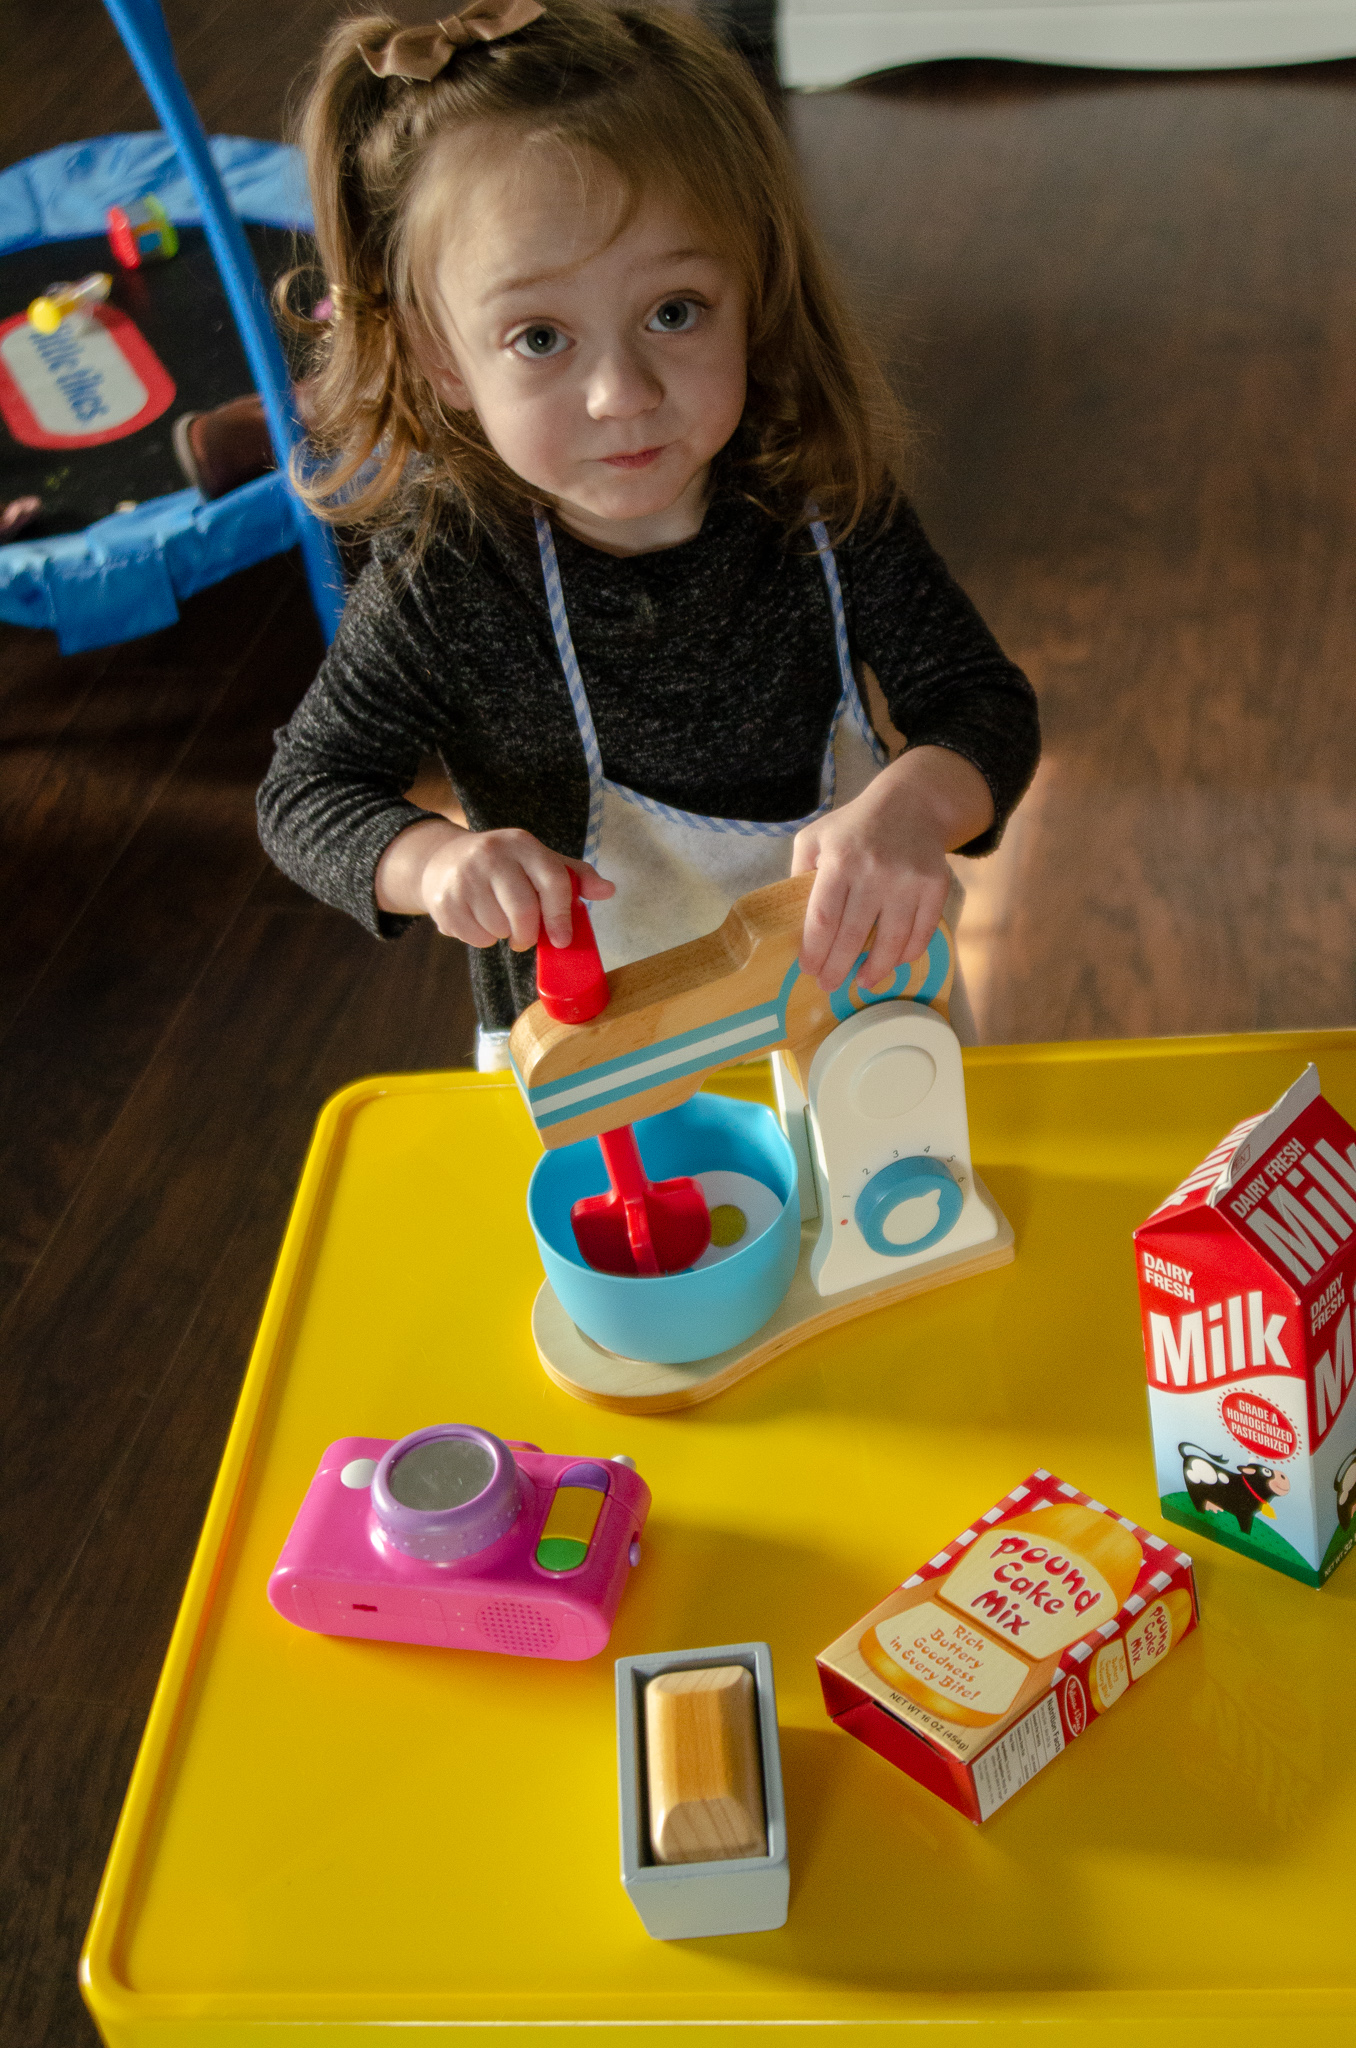 our favorite open ended toys for pretend play - she got guts